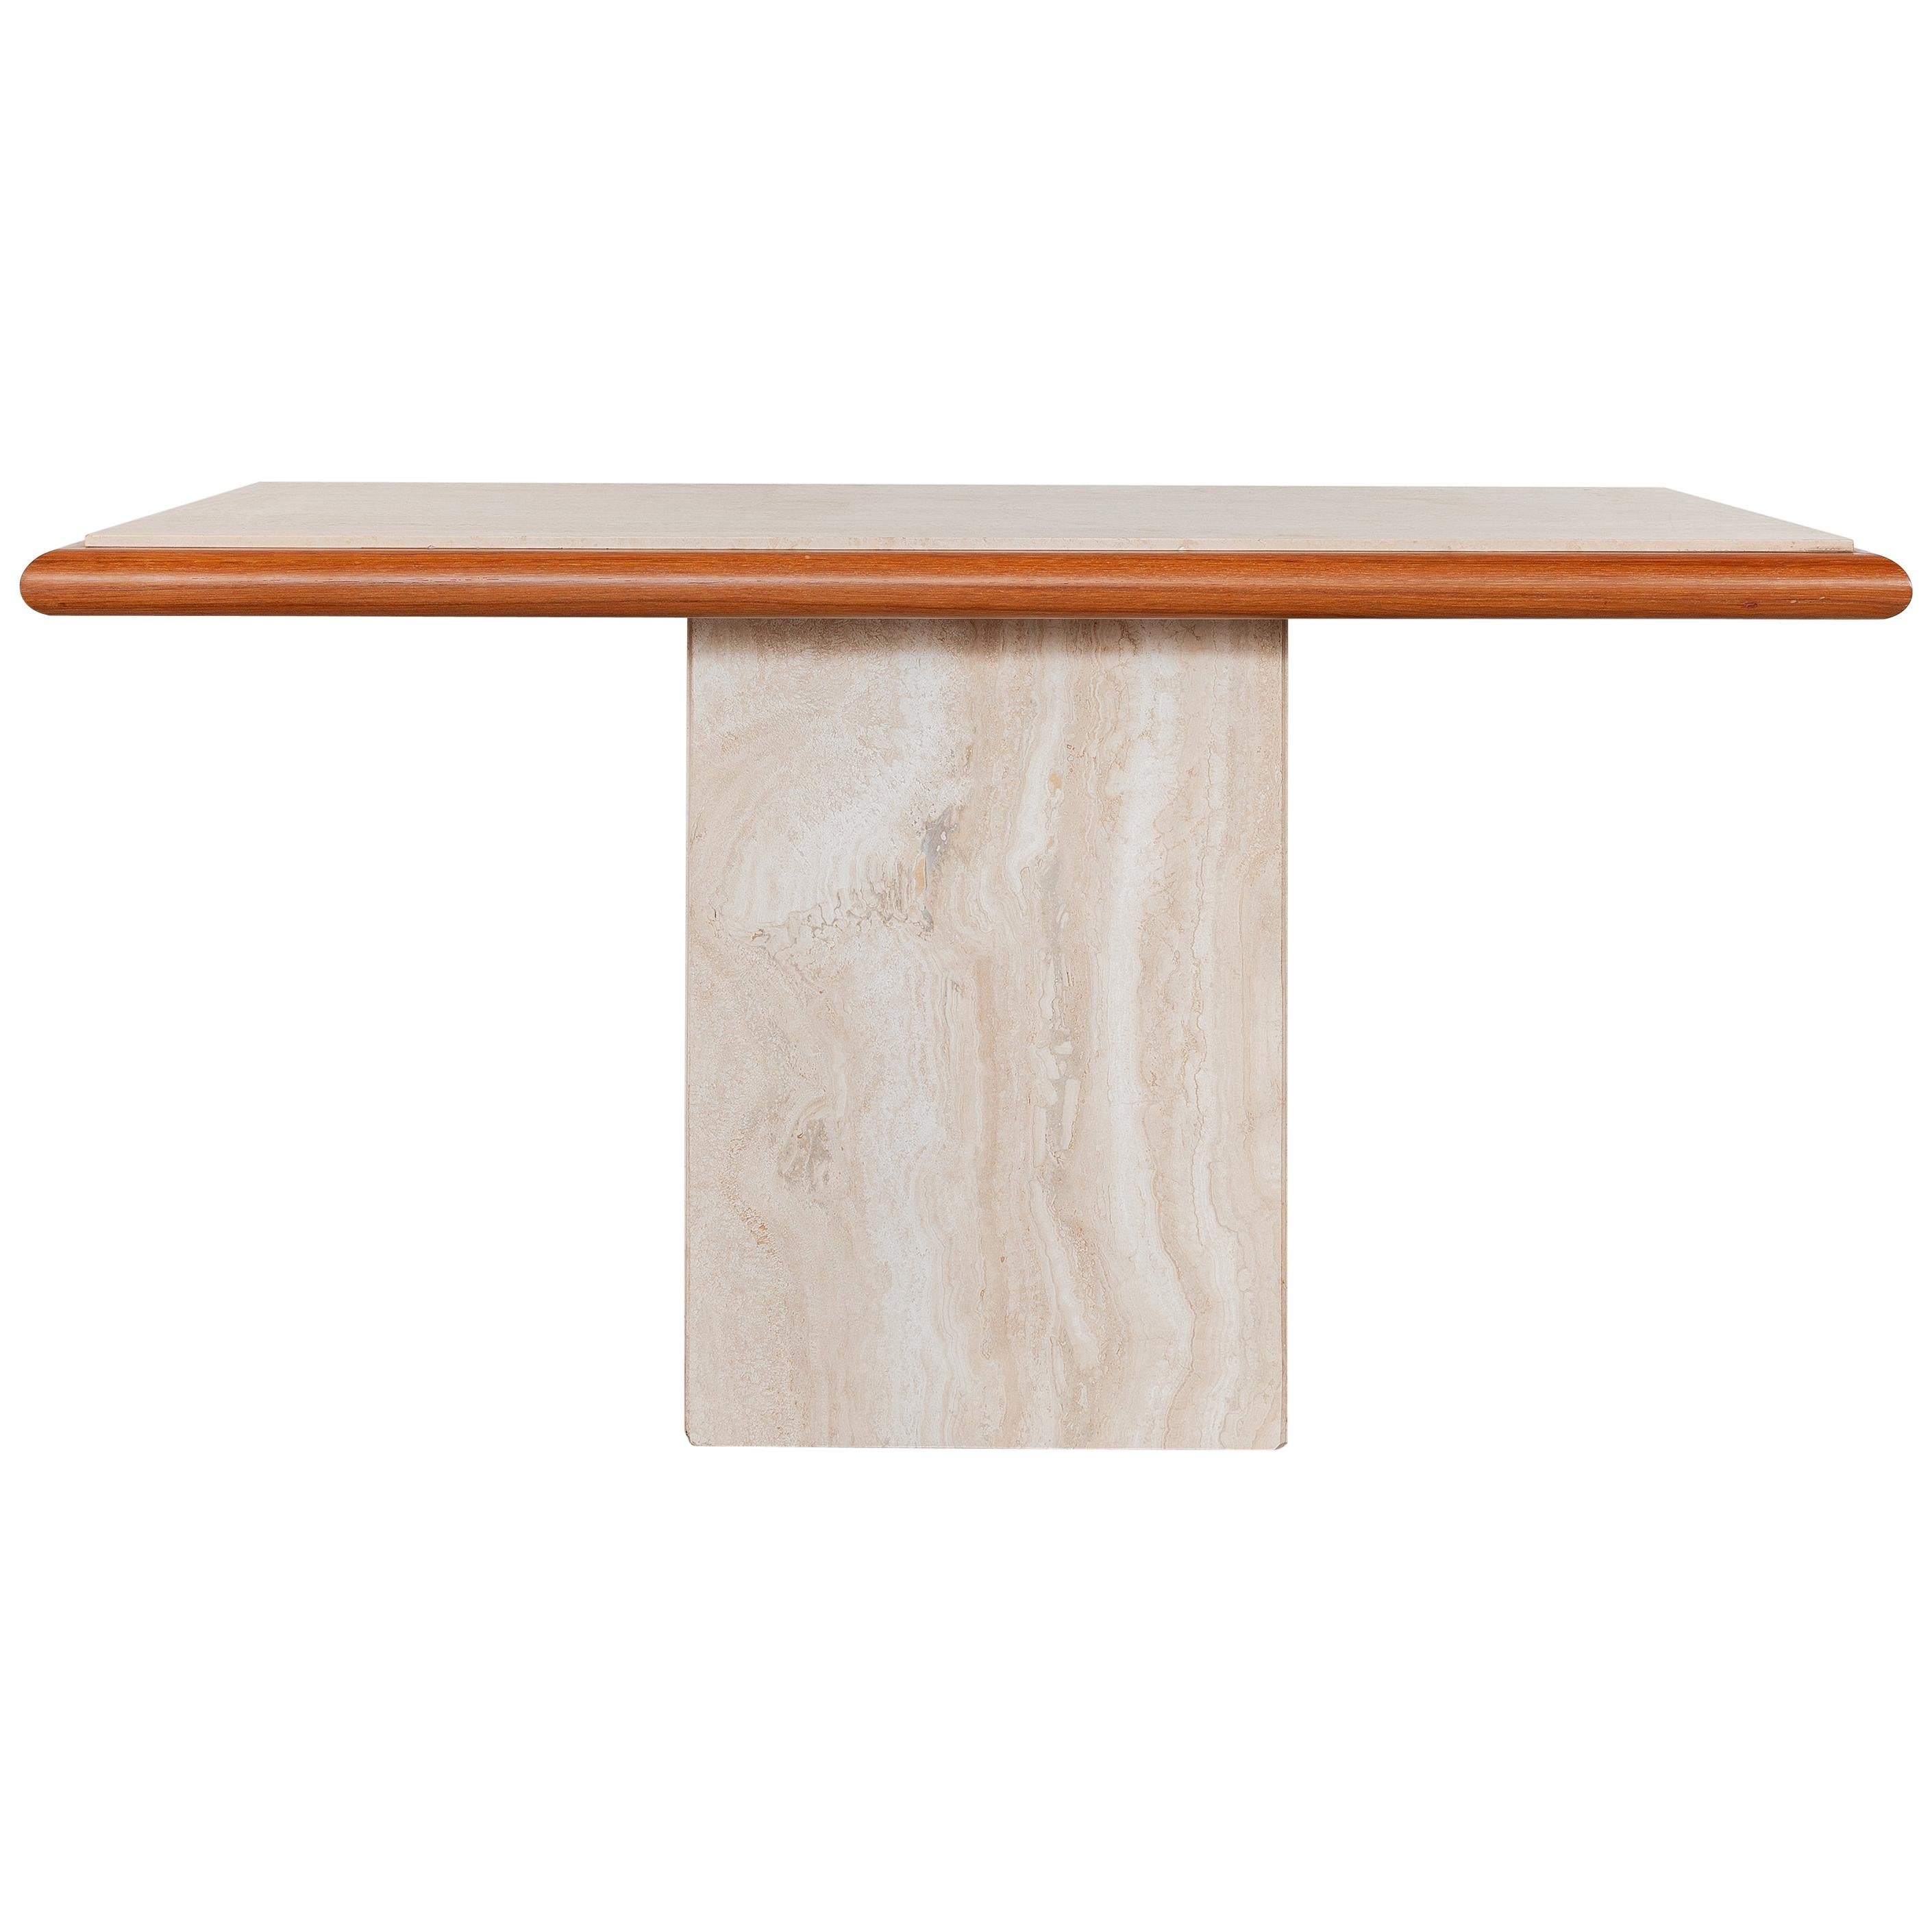 Travertine Console Table,Italy 1970s